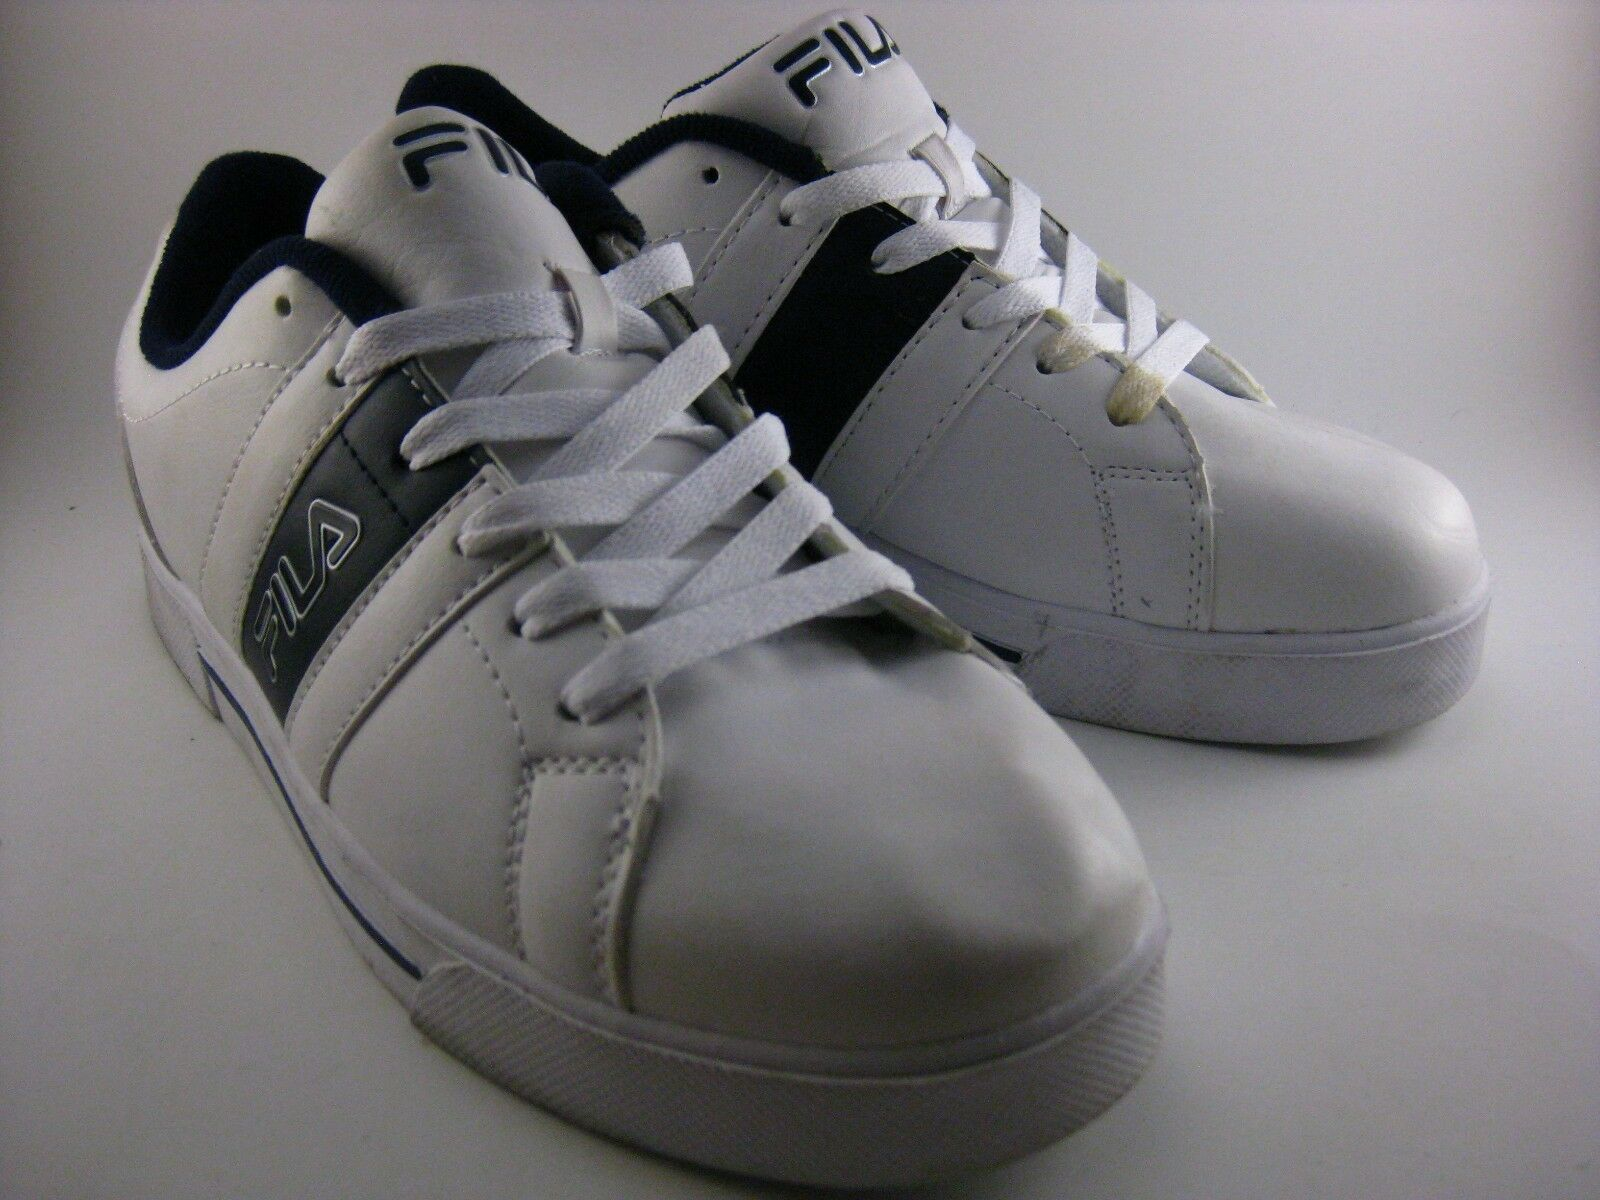 Fila Boca 6 White/Dark Navy Blue Athletic Shoes Price reduction 1SC60100-147 Price reduction Comfortable and good-looking